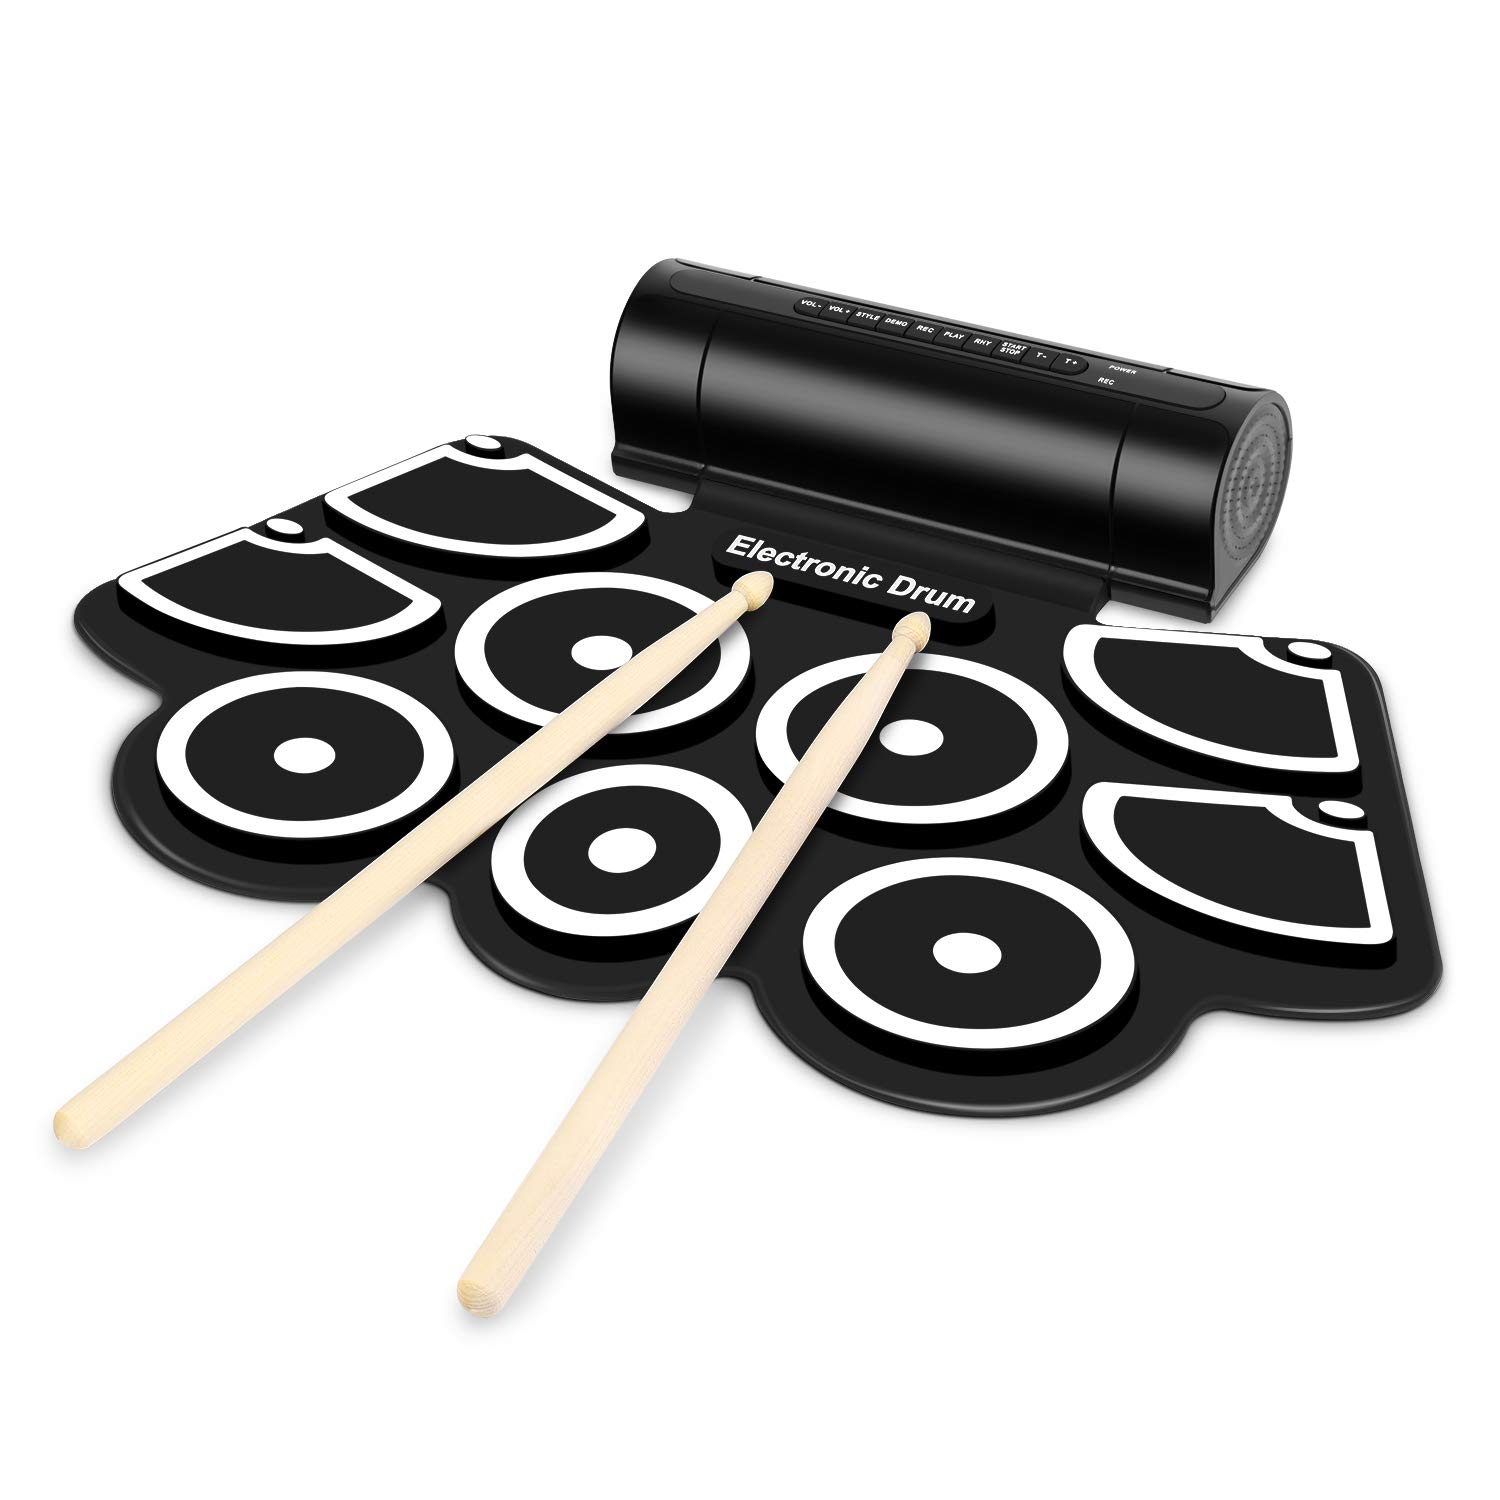 Flexzion Digital Electronic Roll Up Drum Pad Set Kit - Support MIDI Output DTXMania Games, Portable Silicone Sheet 9 Pads with Drum Stick, Foot Pedal Switch, Headphone Jack, USB Charging Audio MP3